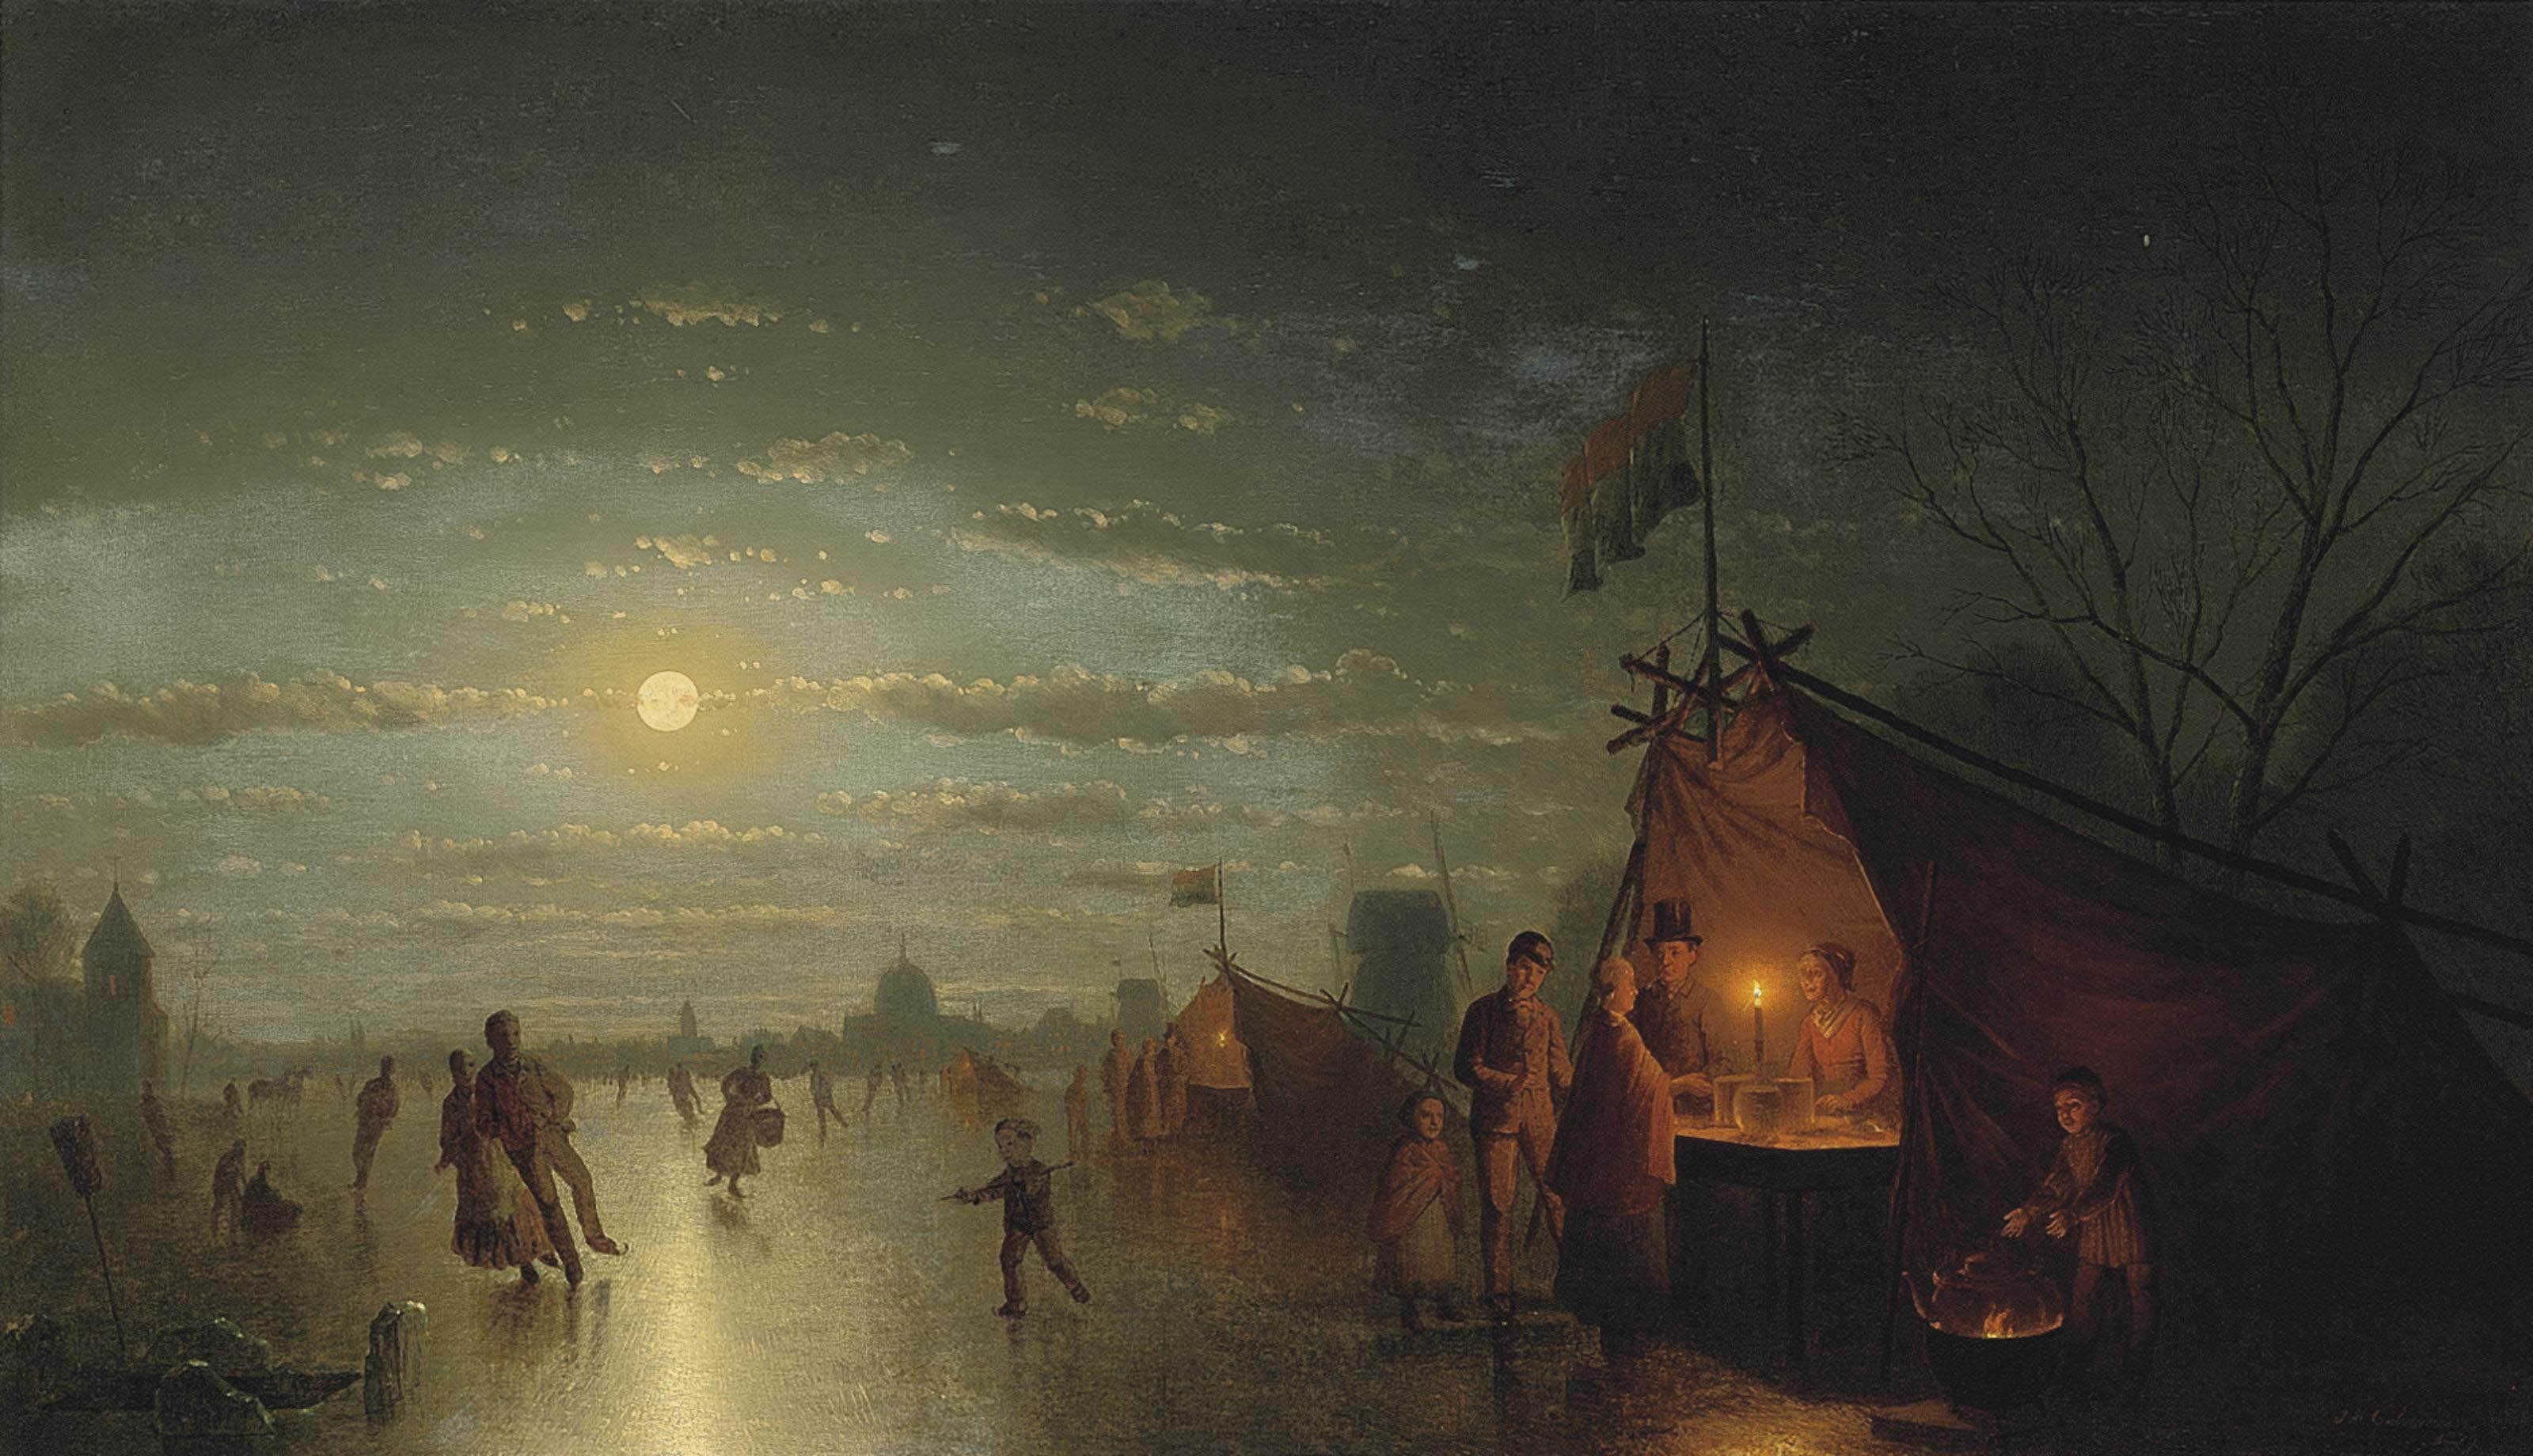 Skaters before a riverside town